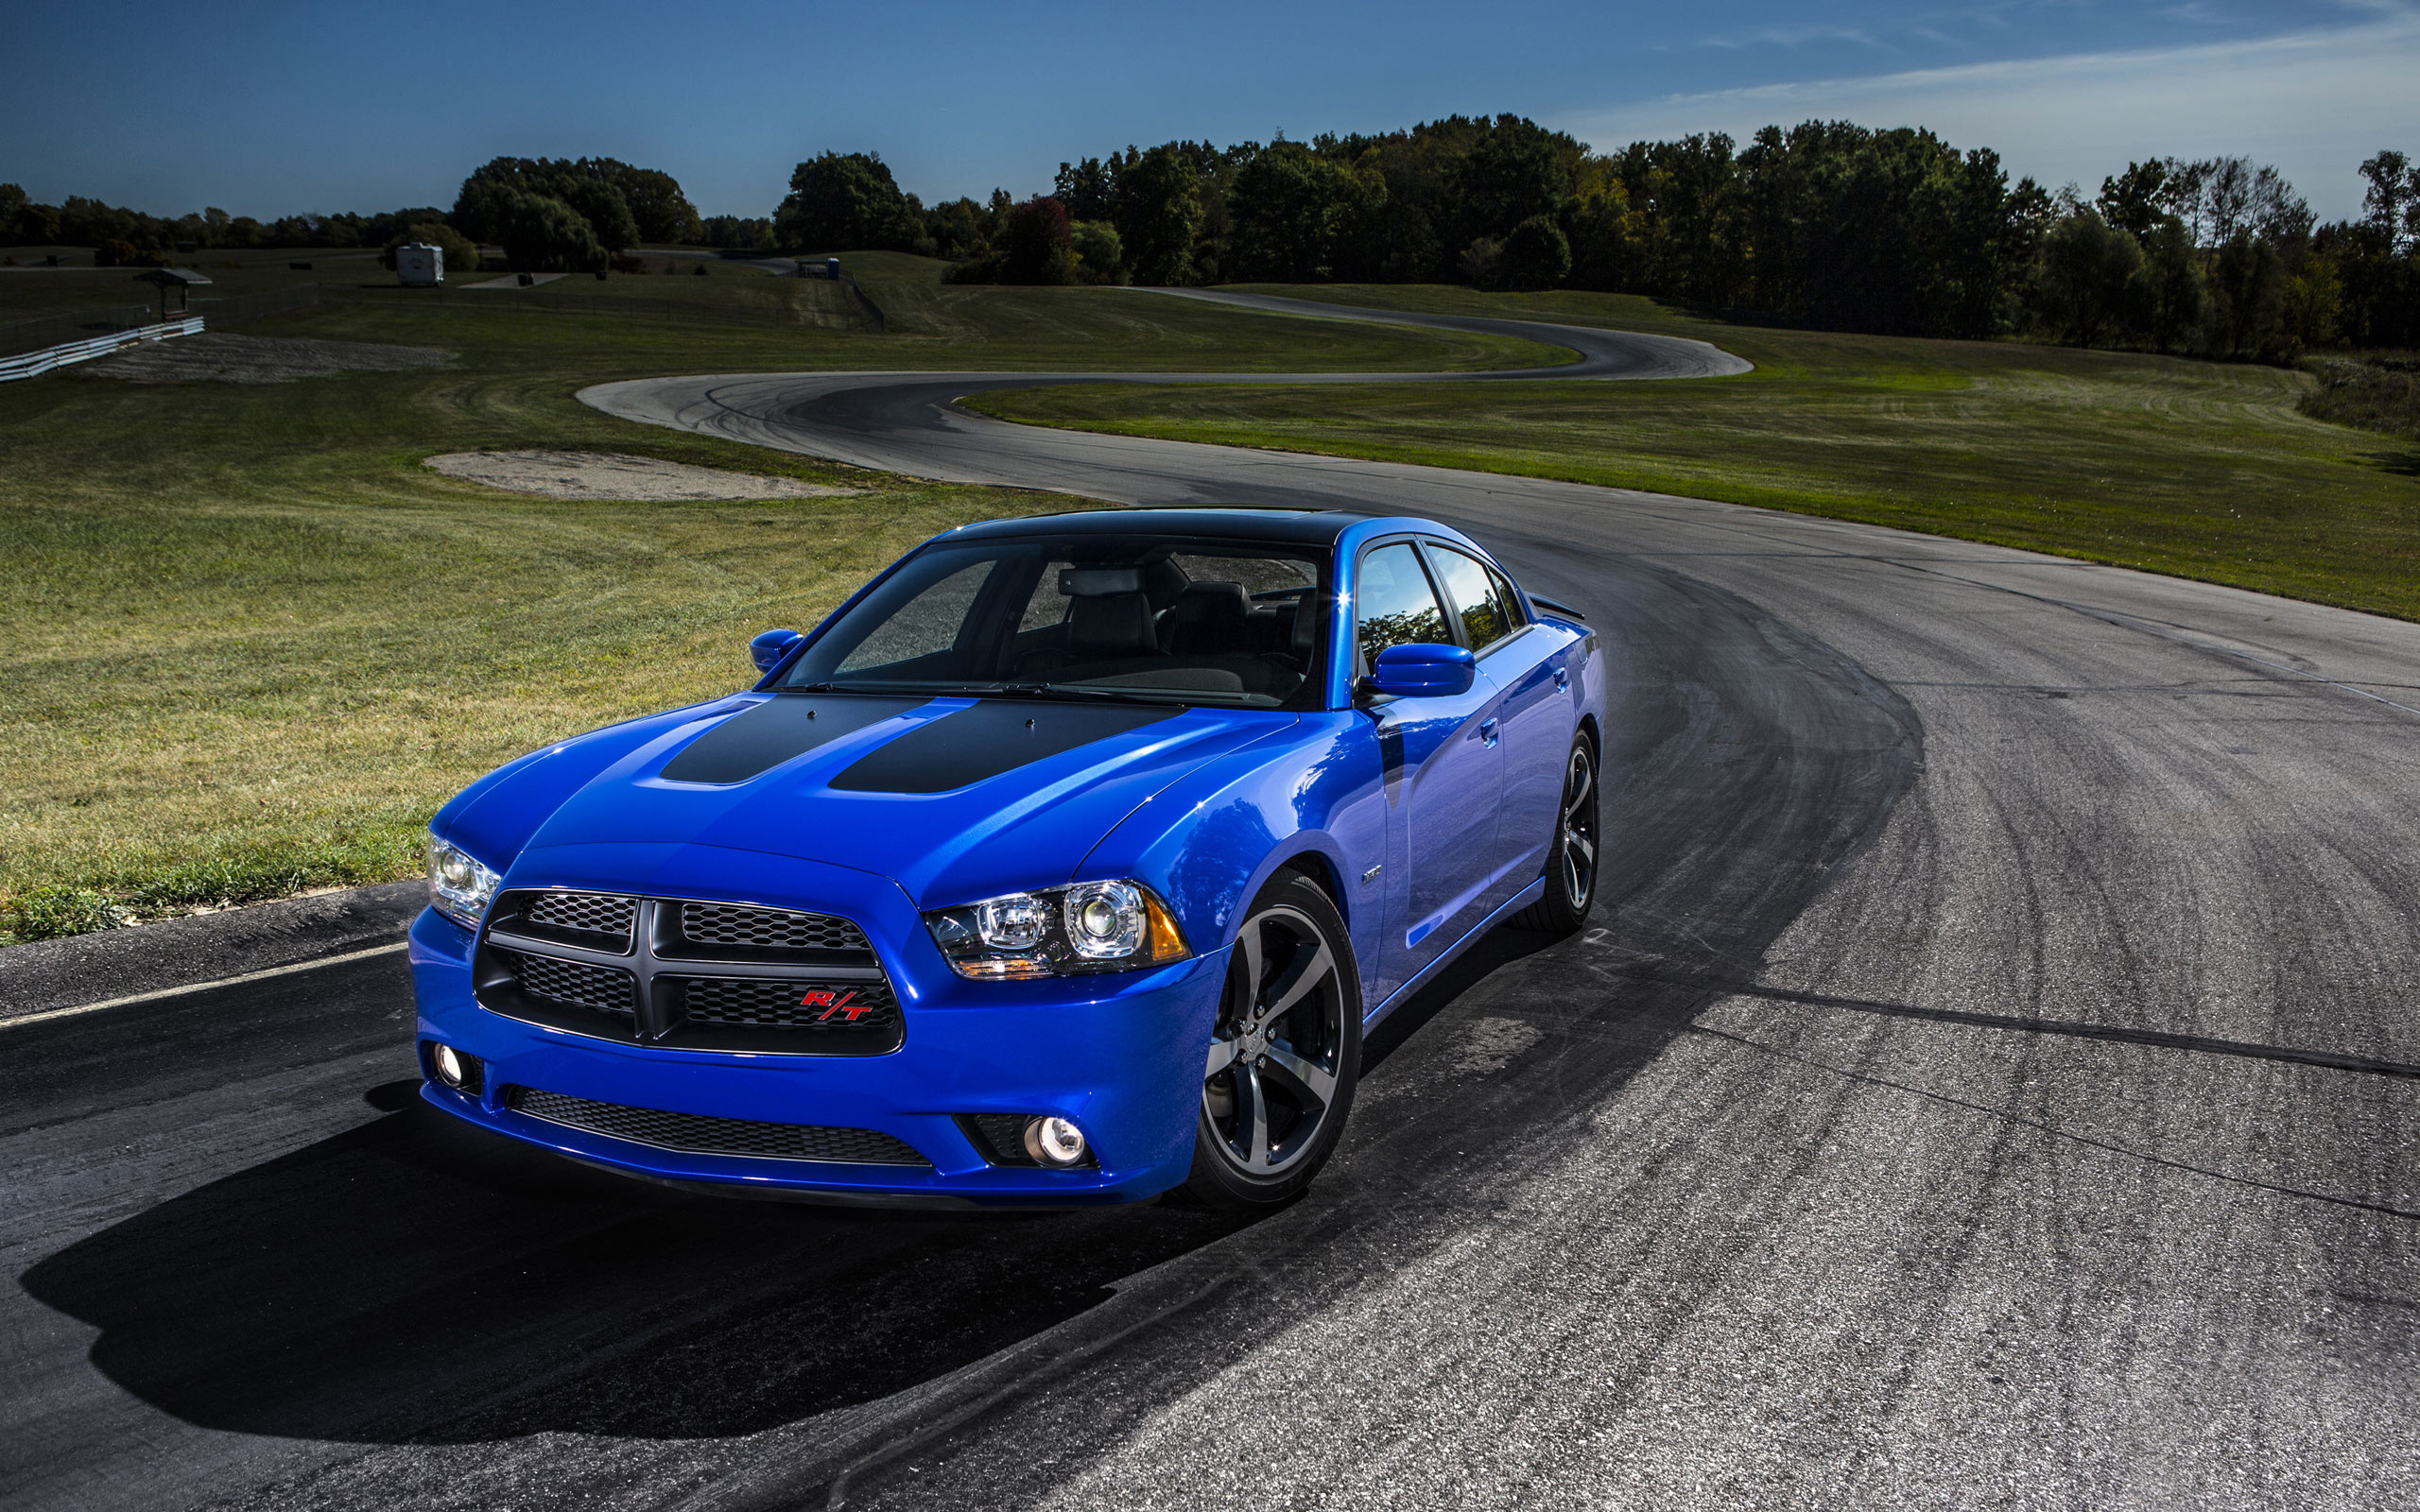 2013 Dodge Charger Dayton Wallpaper Hd Car Wallpapers